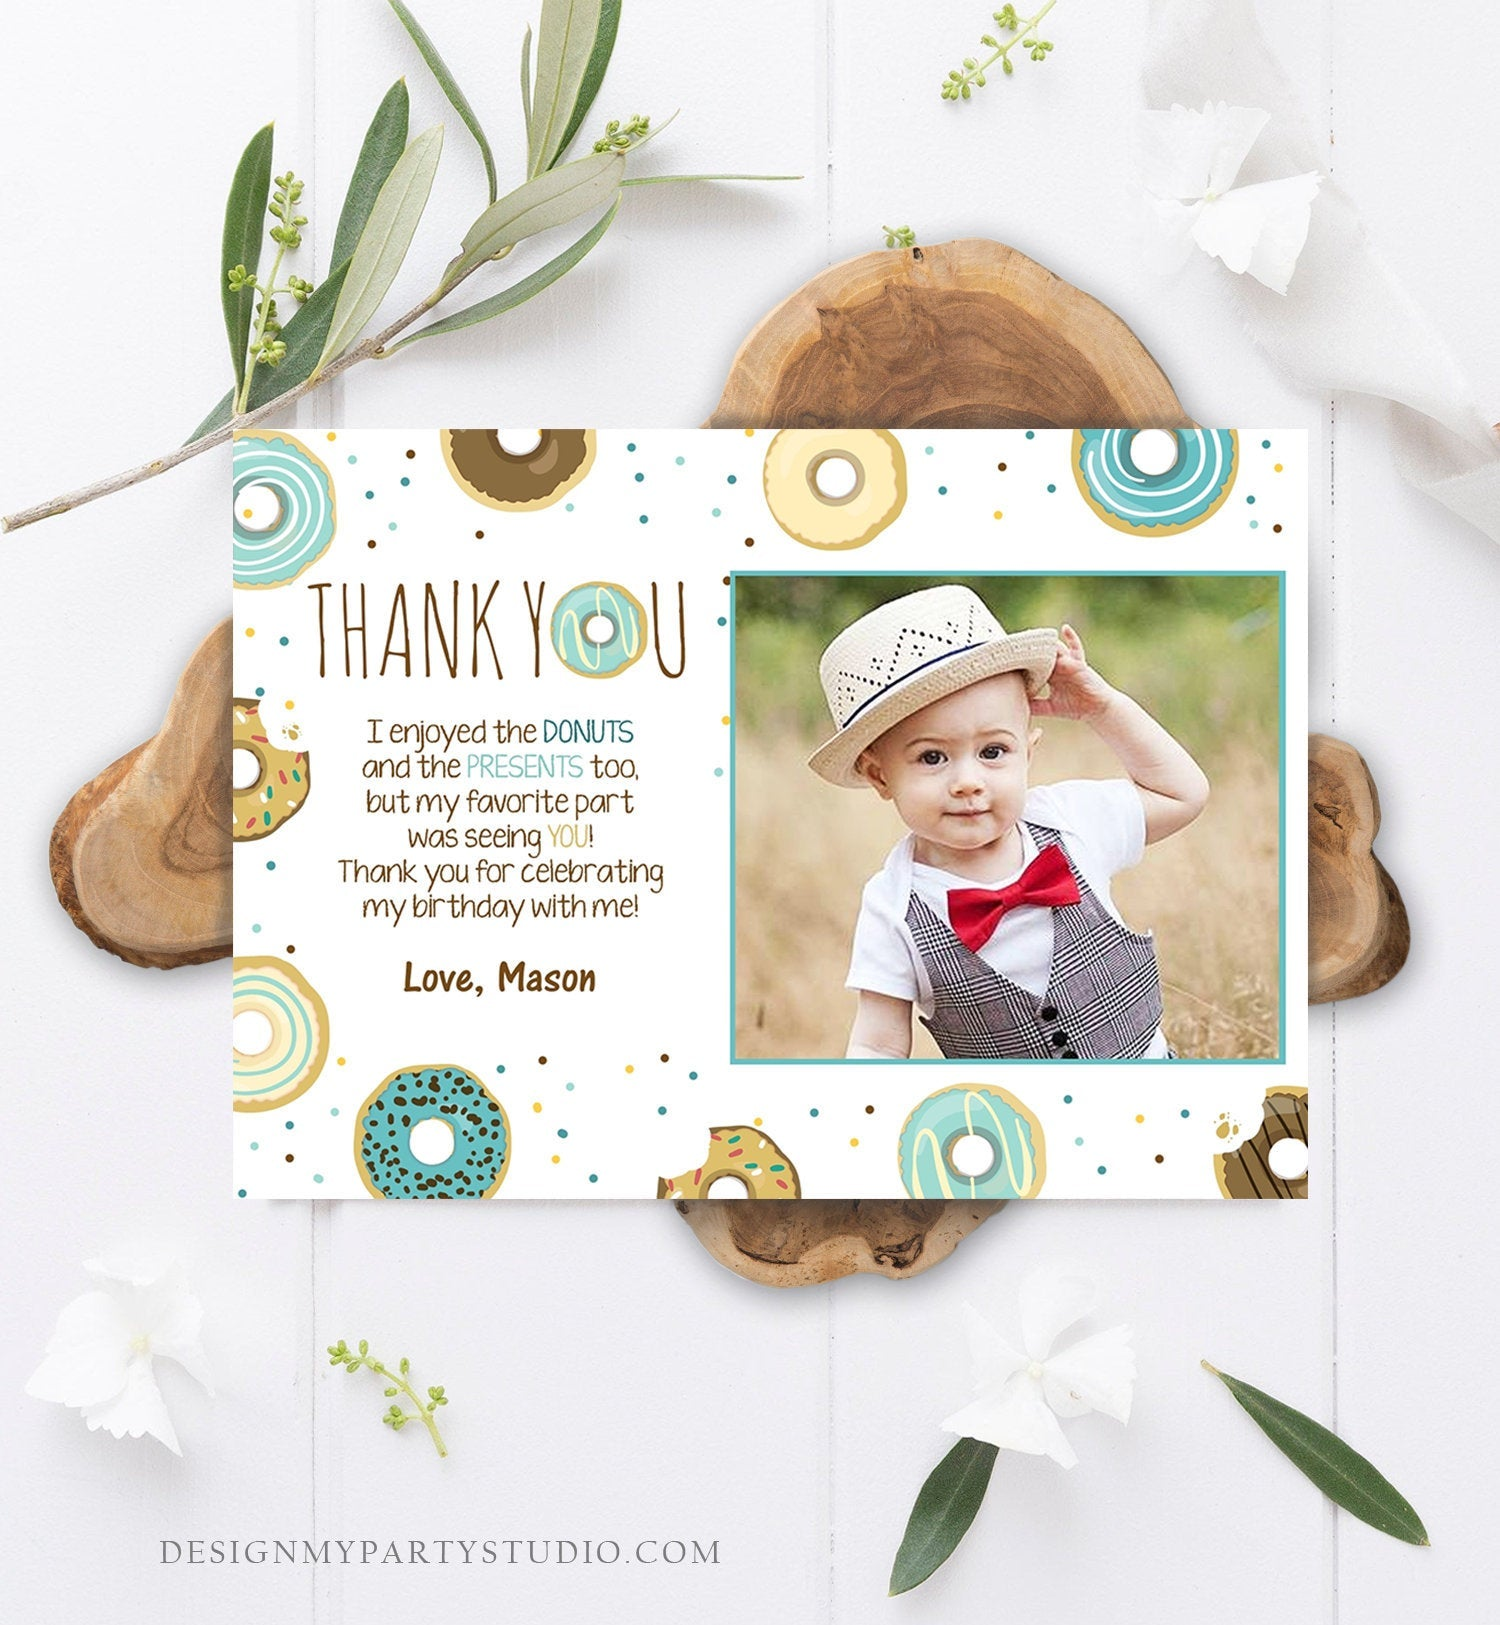 Editable Donut Thank You Card Note Blue Boy Birthday Party Doughnut Thank You Photo Sweet First Birthday 1st Corjl Template Printable 0050